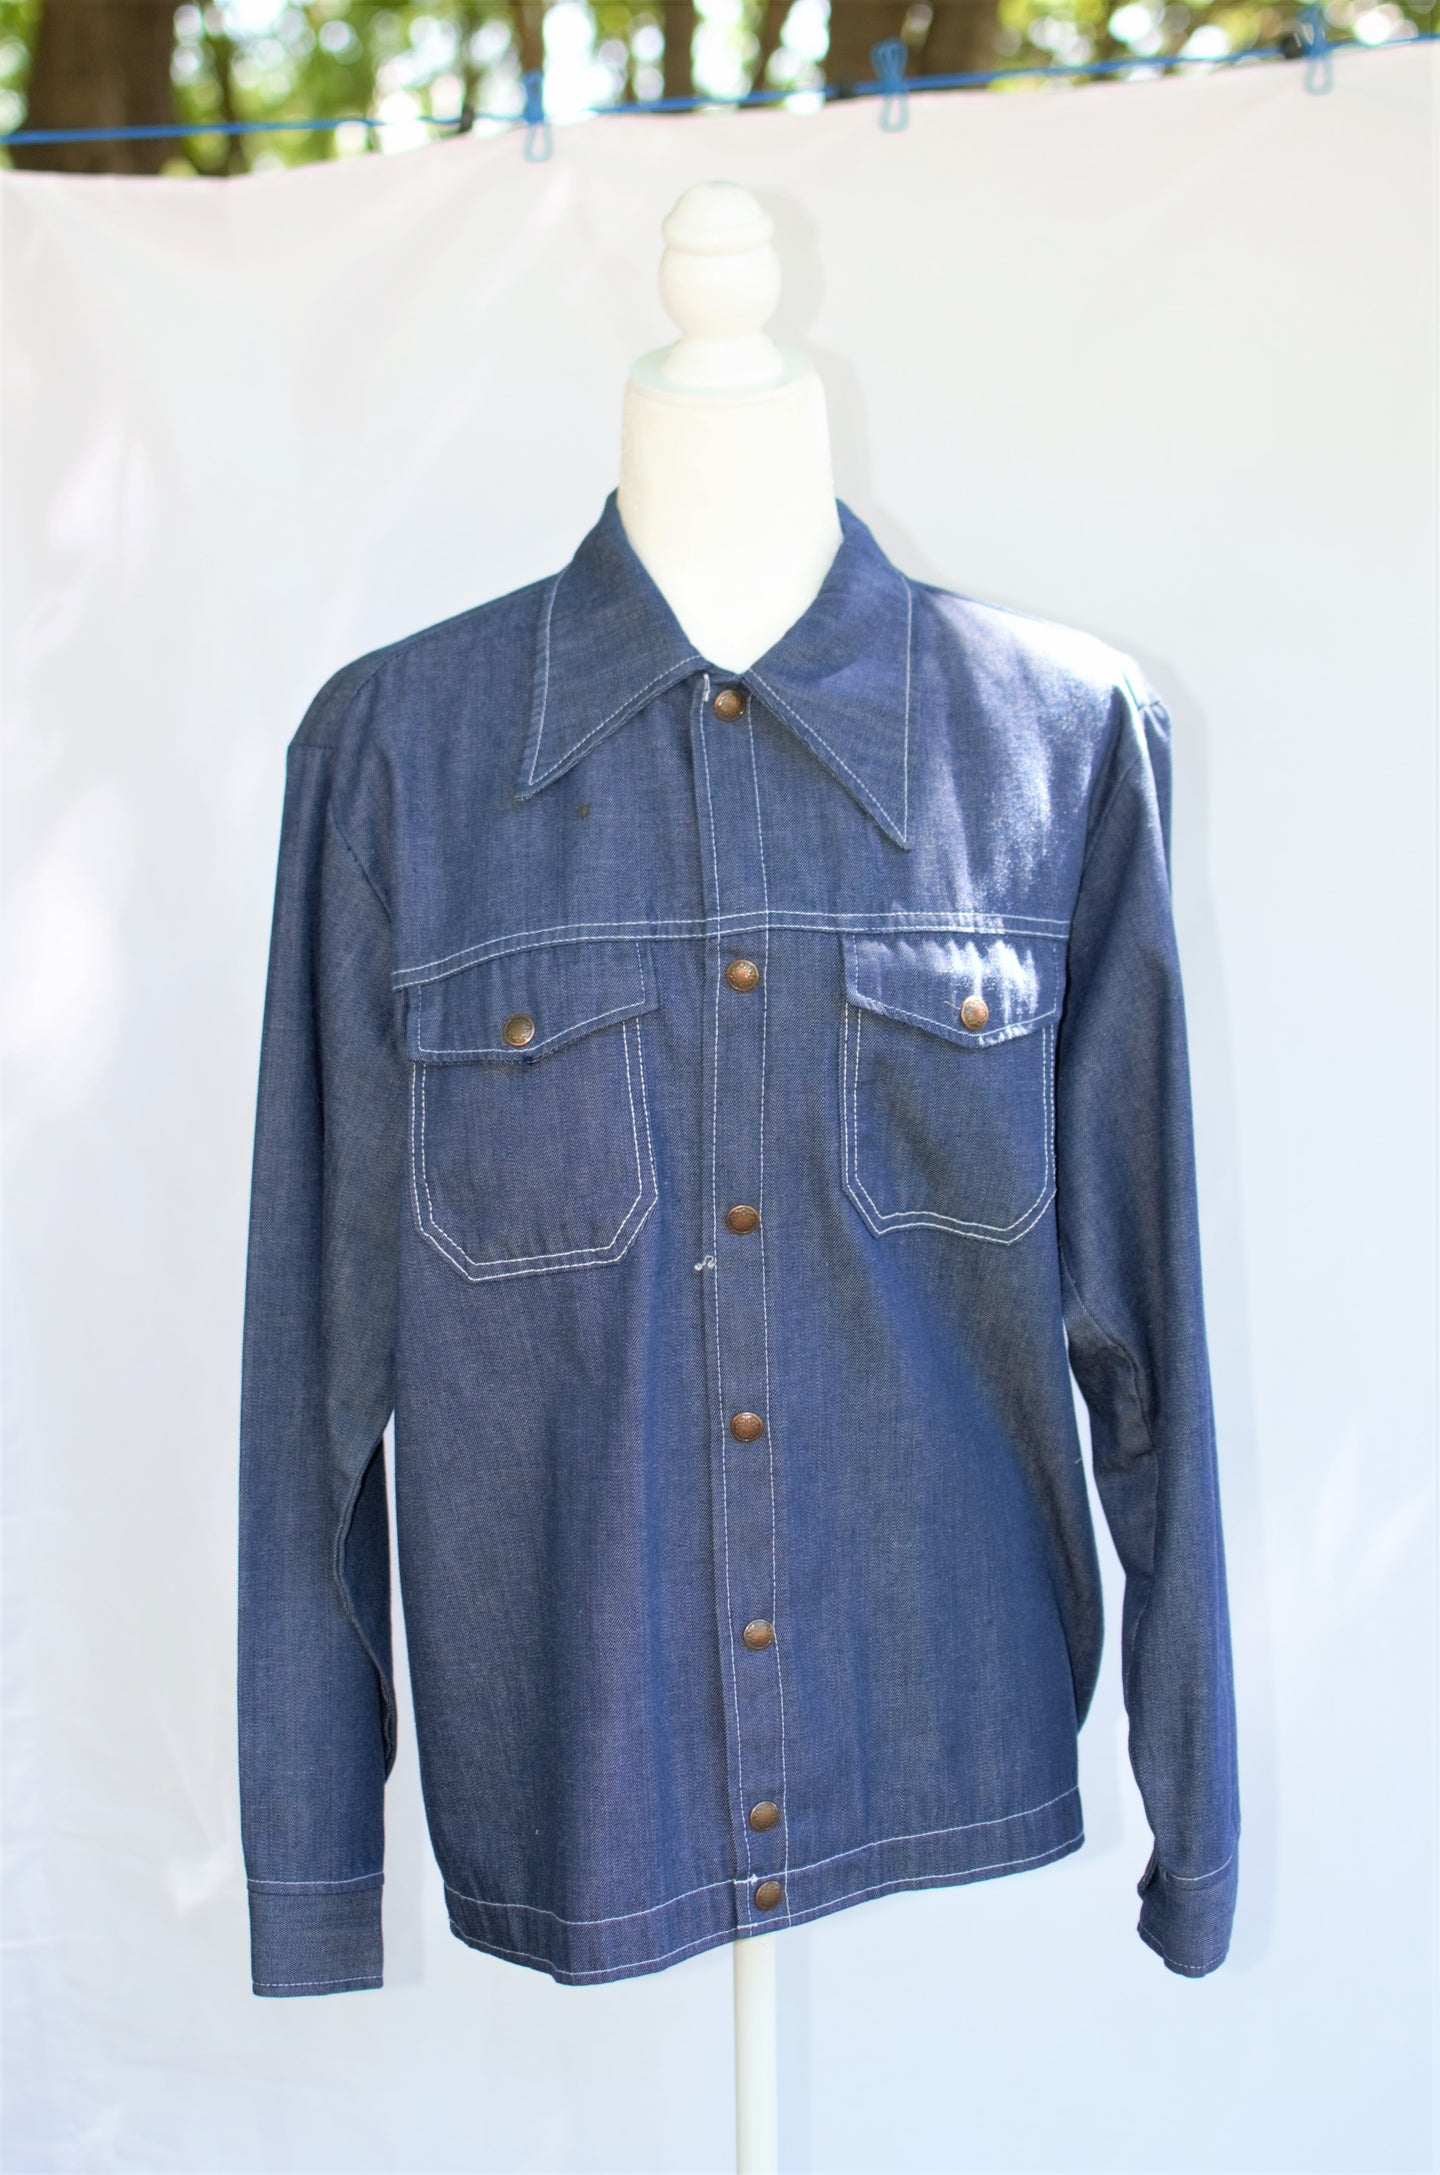 Vintage 70s Denim Work Shirt / S-L